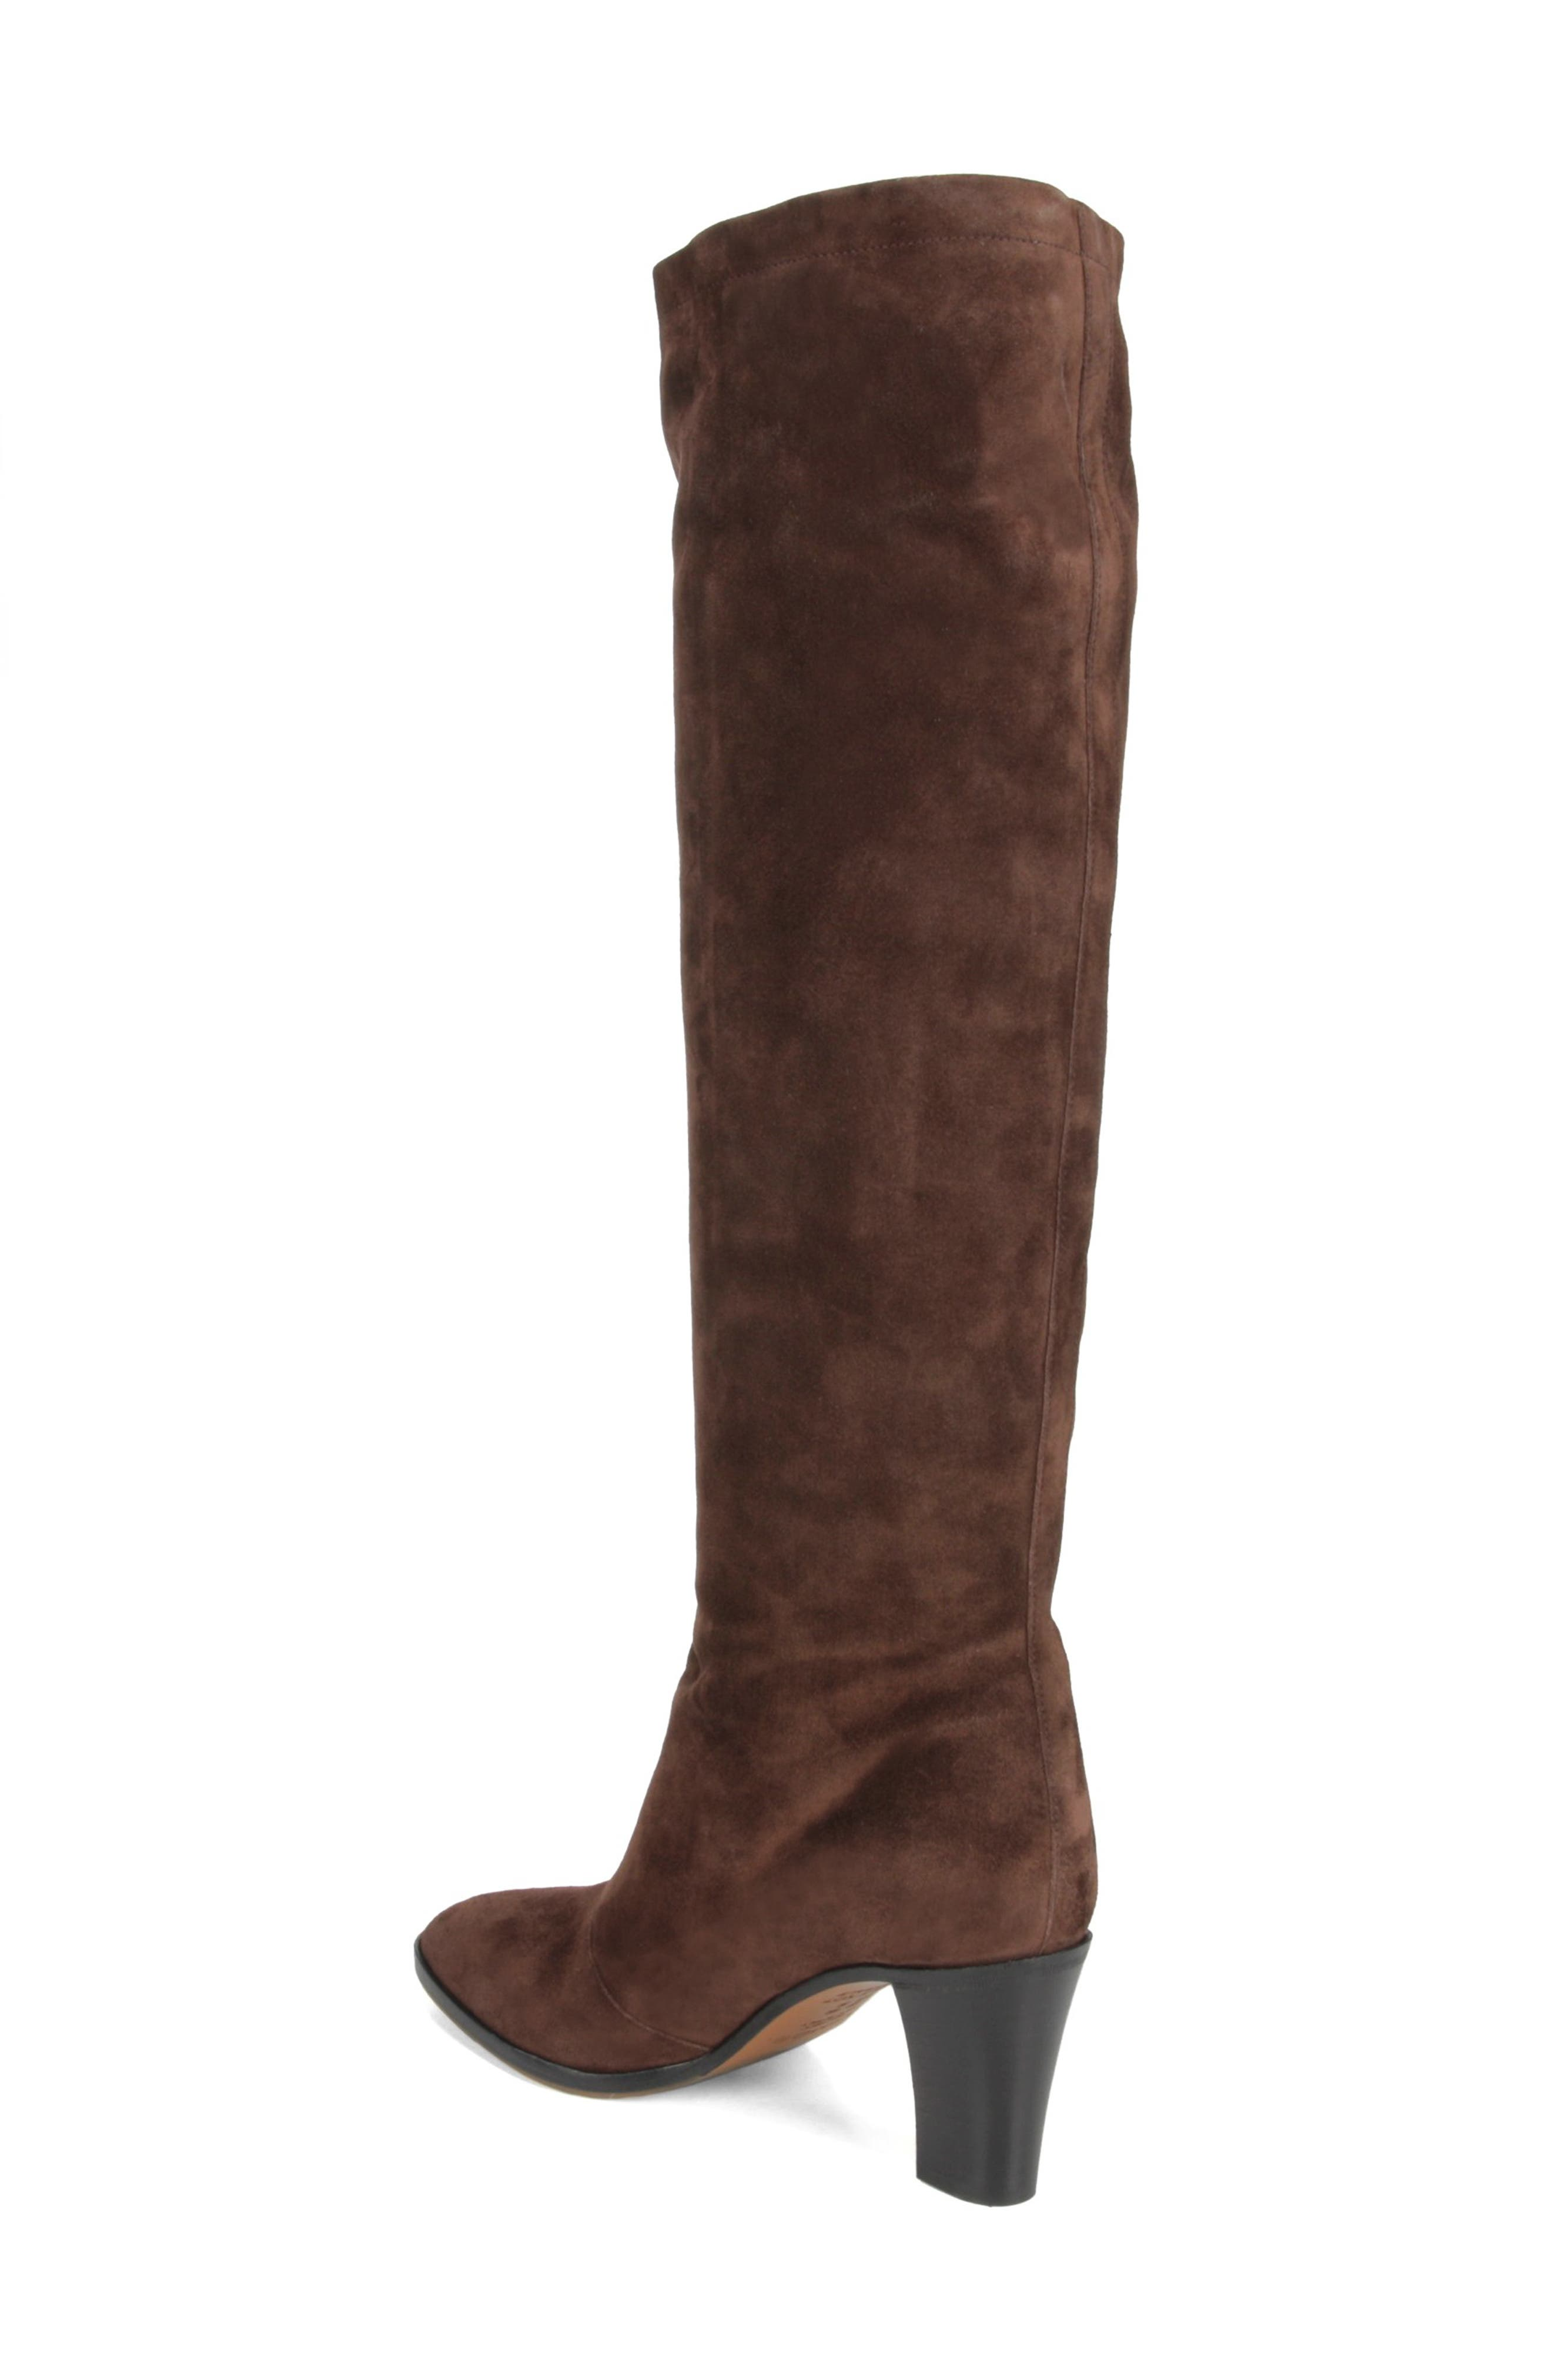 Casper Knee High Pull-On Boot,                             Alternate thumbnail 2, color,                             COTTO BROWN